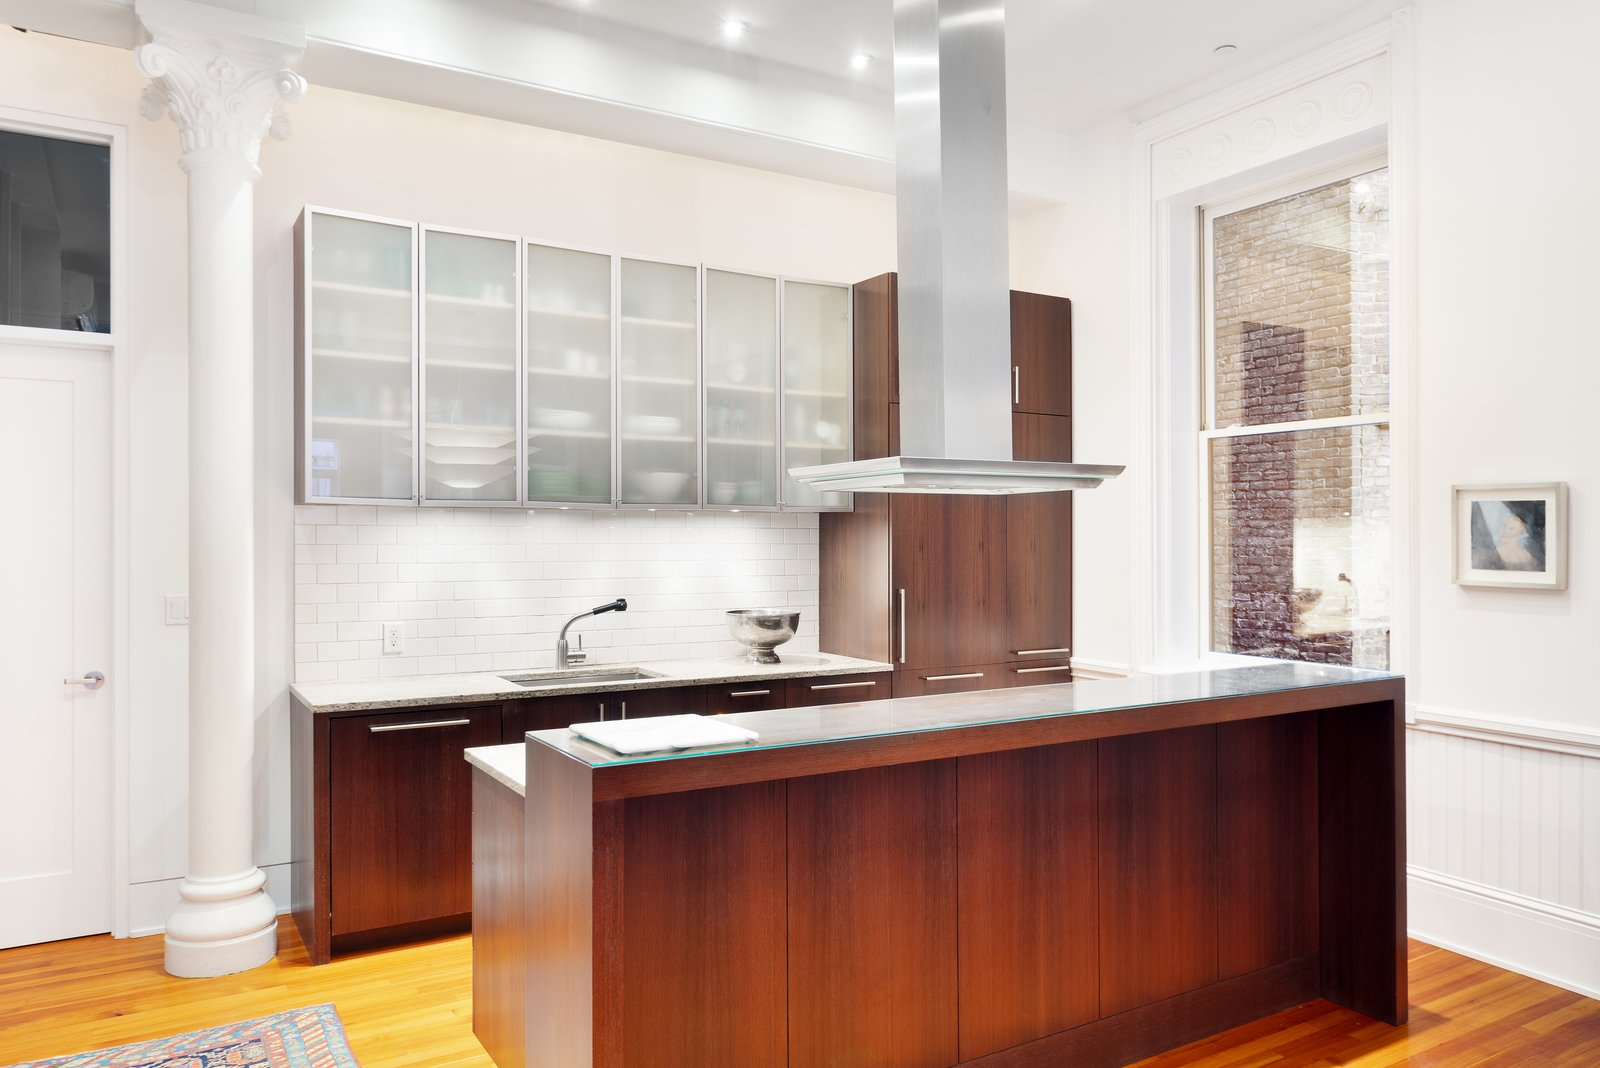 Kitchen, Wall Oven, Refrigerator, and Medium Hardwood Floor The home possesses an open windowed kitchen with large island, custom cabinetry, stainless steel appliances, and a large breakfast bar - an entertaining dream.  Renovated Co-op in Historic Astor Memorial School